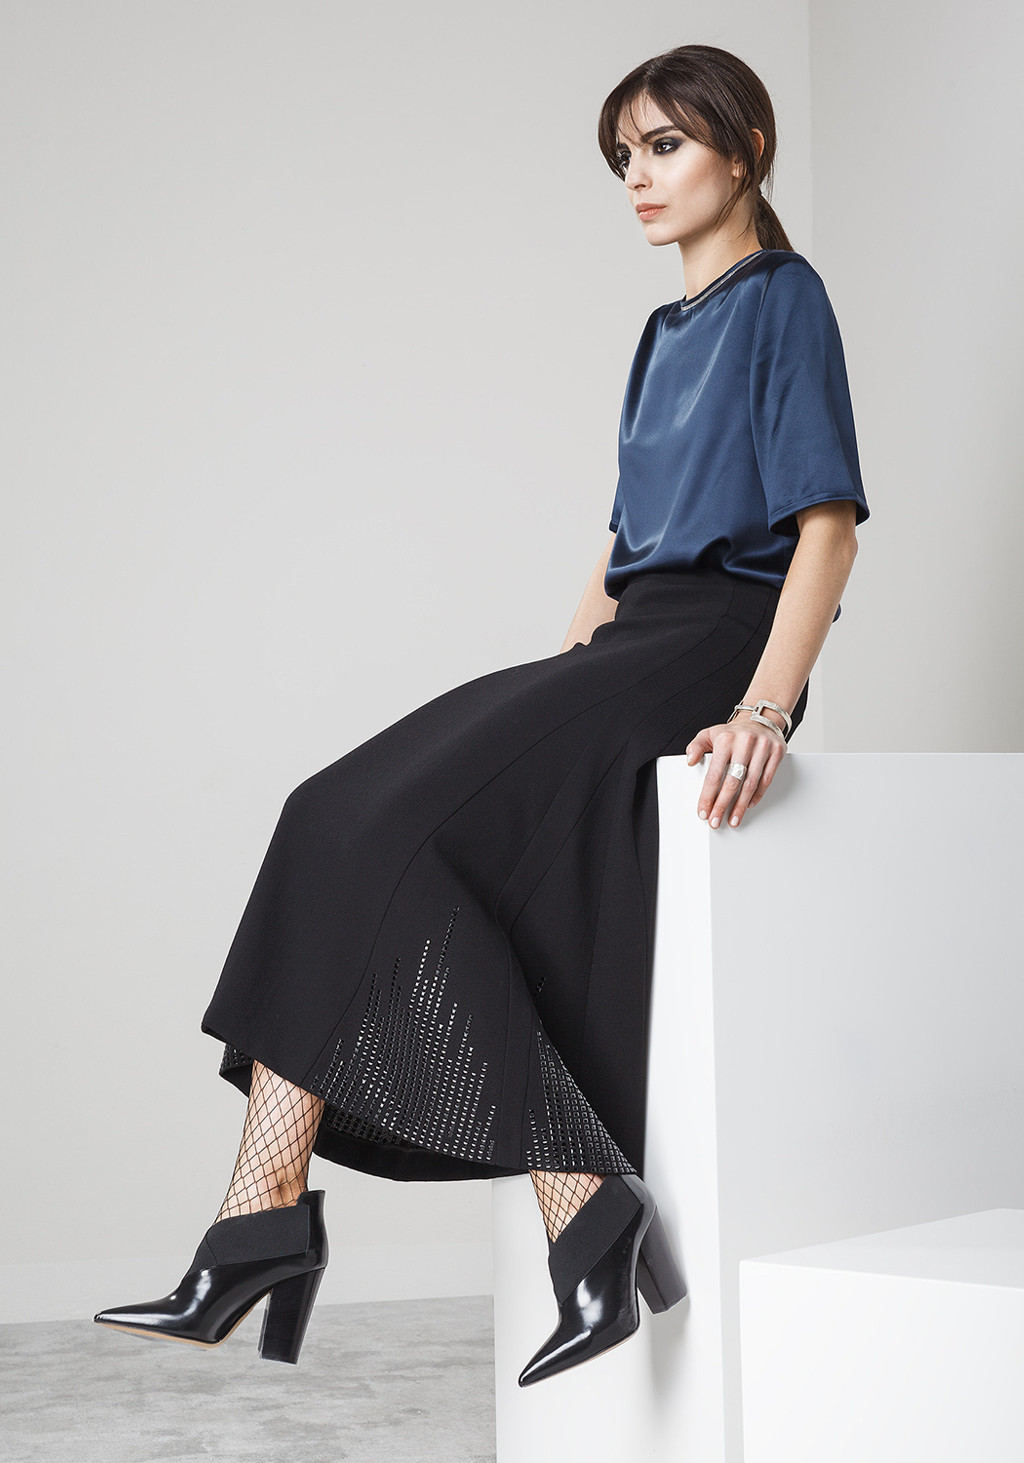 Silk tshirt with metallic details - Long double crepe skirt with bottom brillant studs